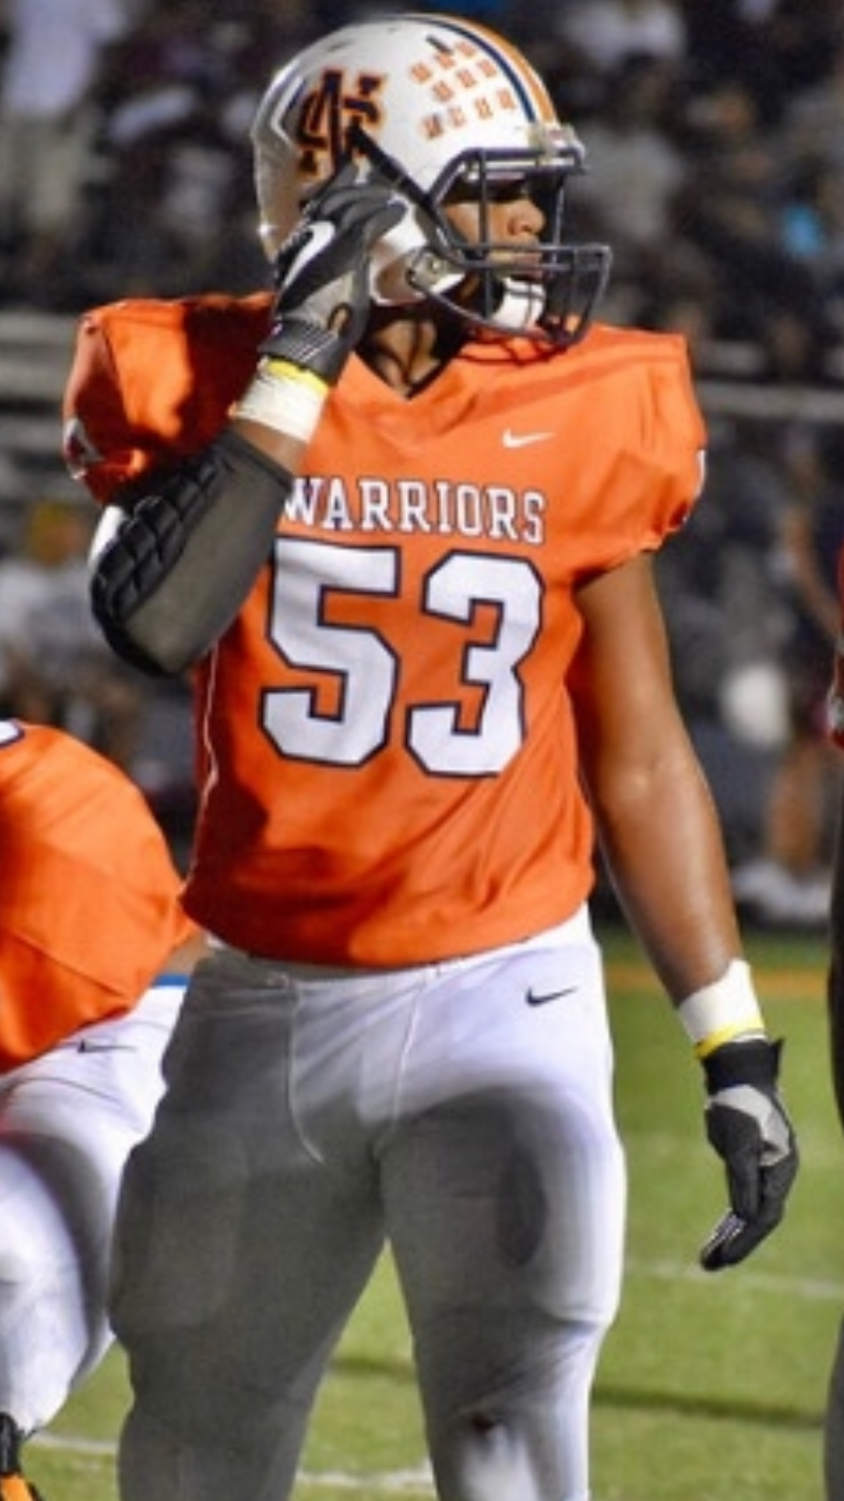 After joining NC's football team, Hester's decision quickly paid off. He received countless offers from schools with a variety of divisions. He got over 10 D1 offers in total. Hester recalls that he was shocked at the amount of offers he received not only from D1 schools but from schools across different divisions.